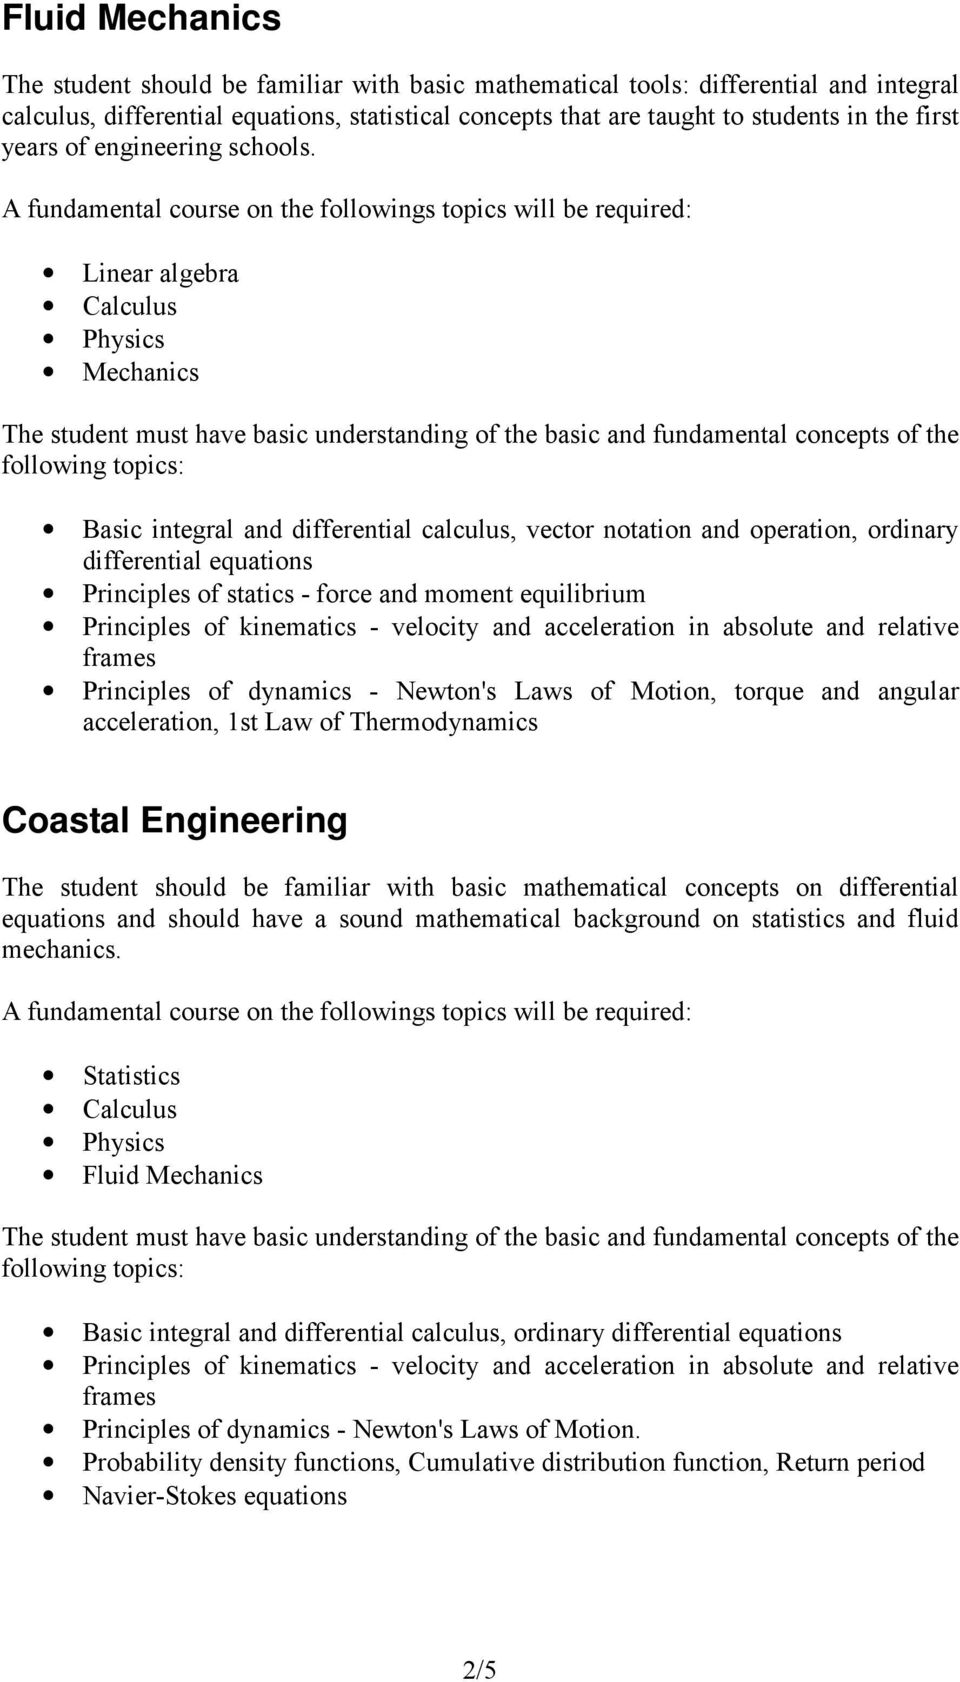 Coastal Engineering The student should be familiar with basic mathematical concepts on differential equations and should have a sound mathematical background on statistics and fluid mechanics.